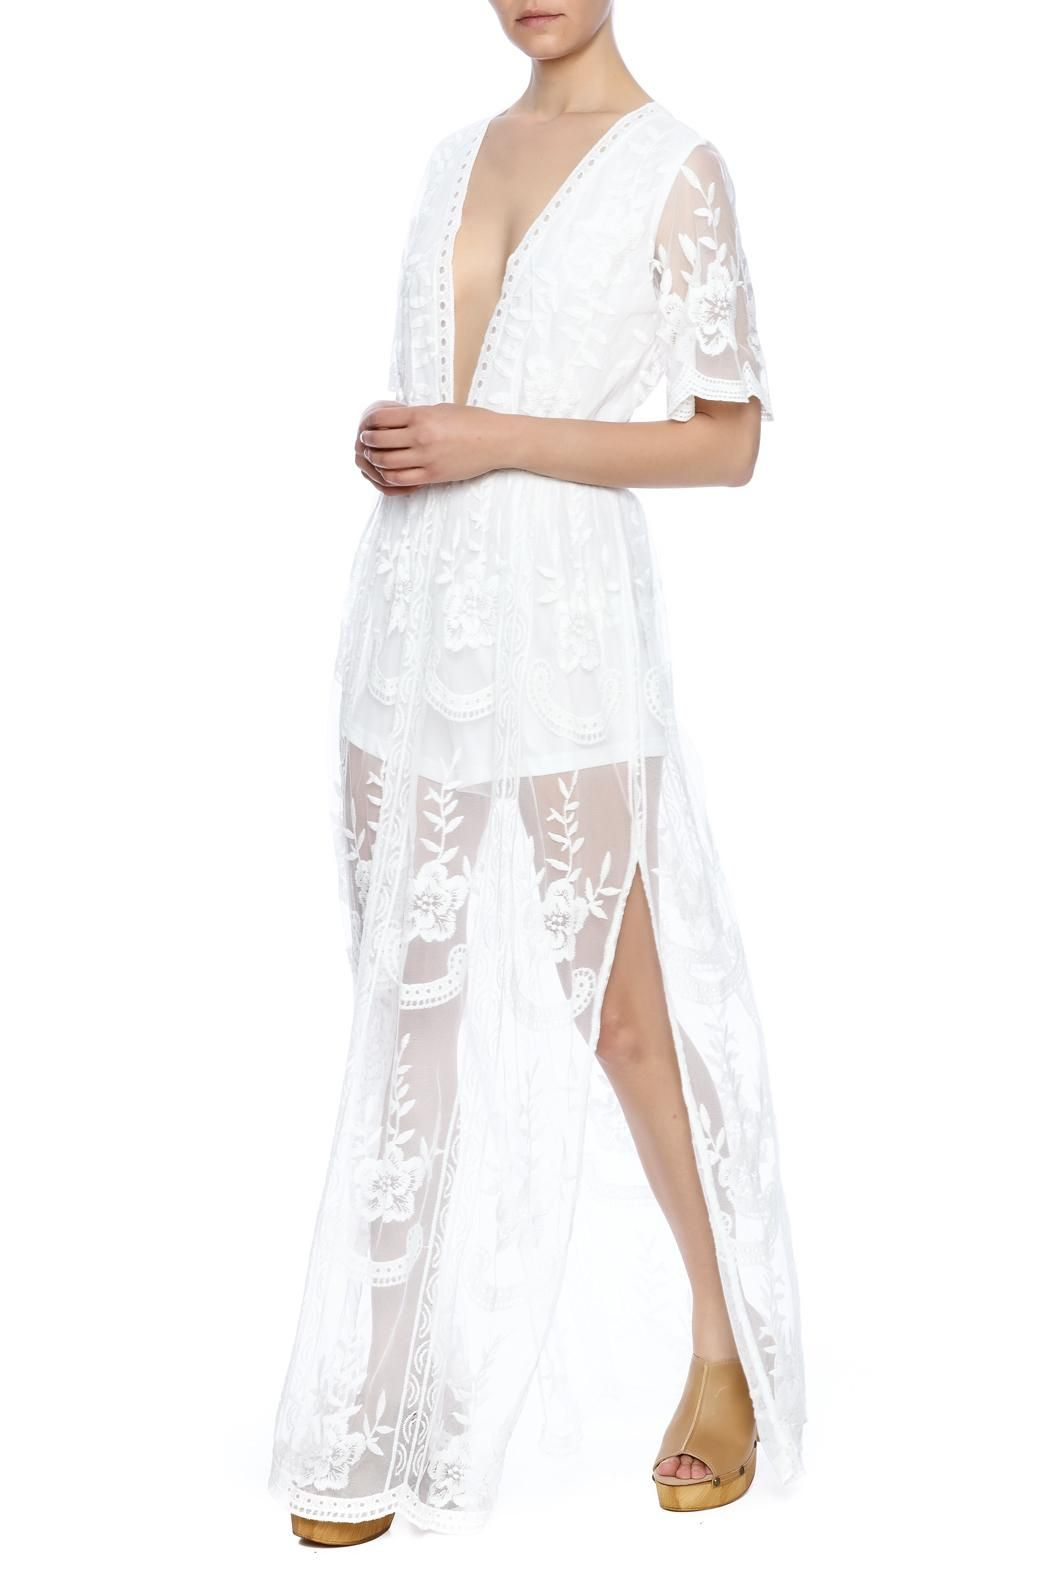 8bb29645e4e6 White lace romper with a maxi skirt and deep v-neckline. Embroidered Maxi  Romper by Honey Punch. Clothing - Jumpsuits   Rompers - Rompers Florida